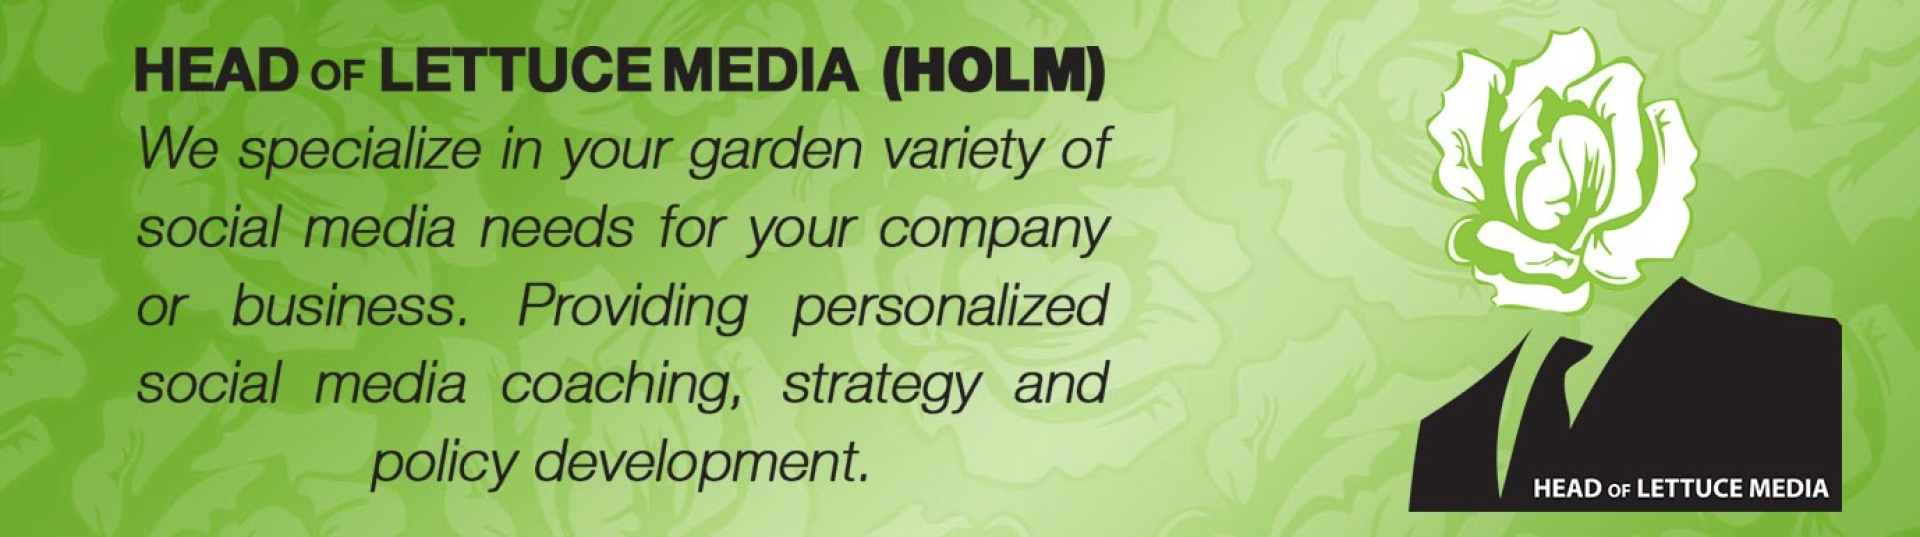 head-of-lettuce-media